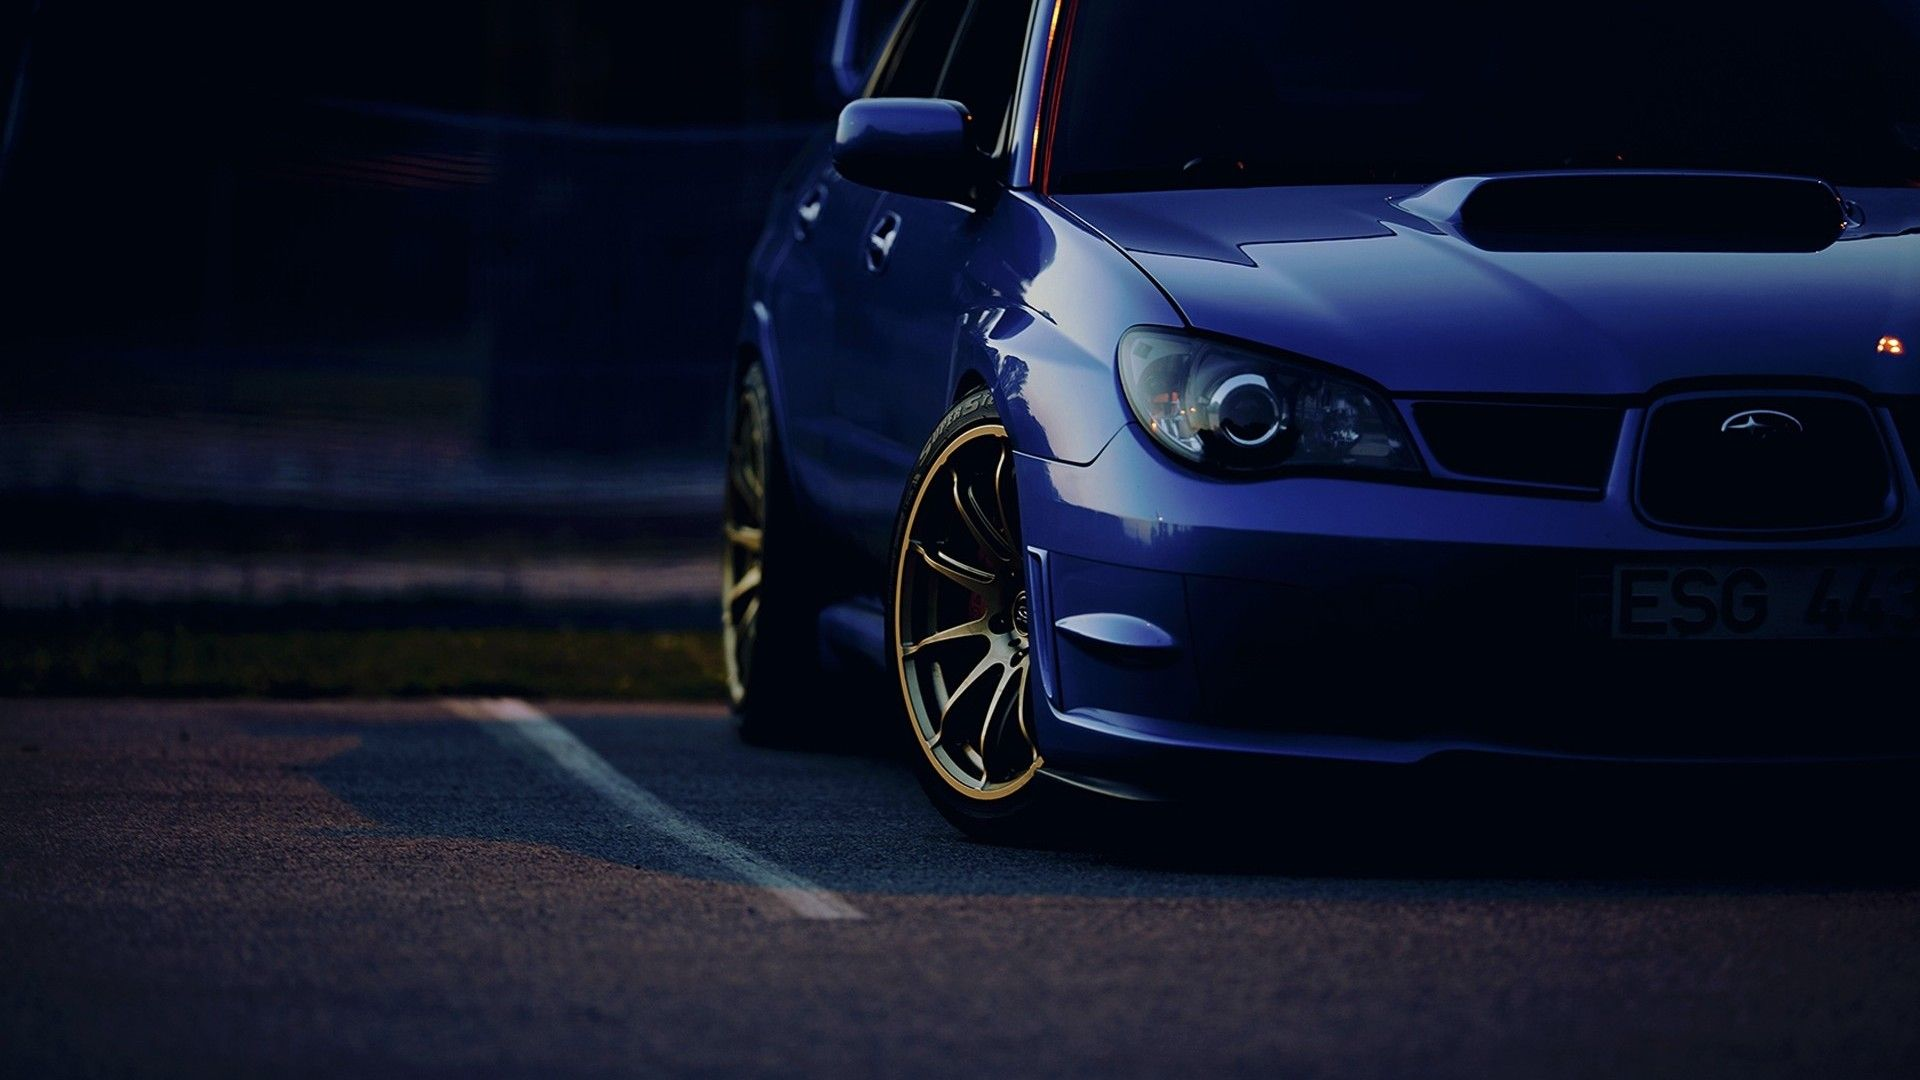 Subaru Impreza Wrx Sti Car Wallpaper Hd Sti Car Subaru Cars Wrx